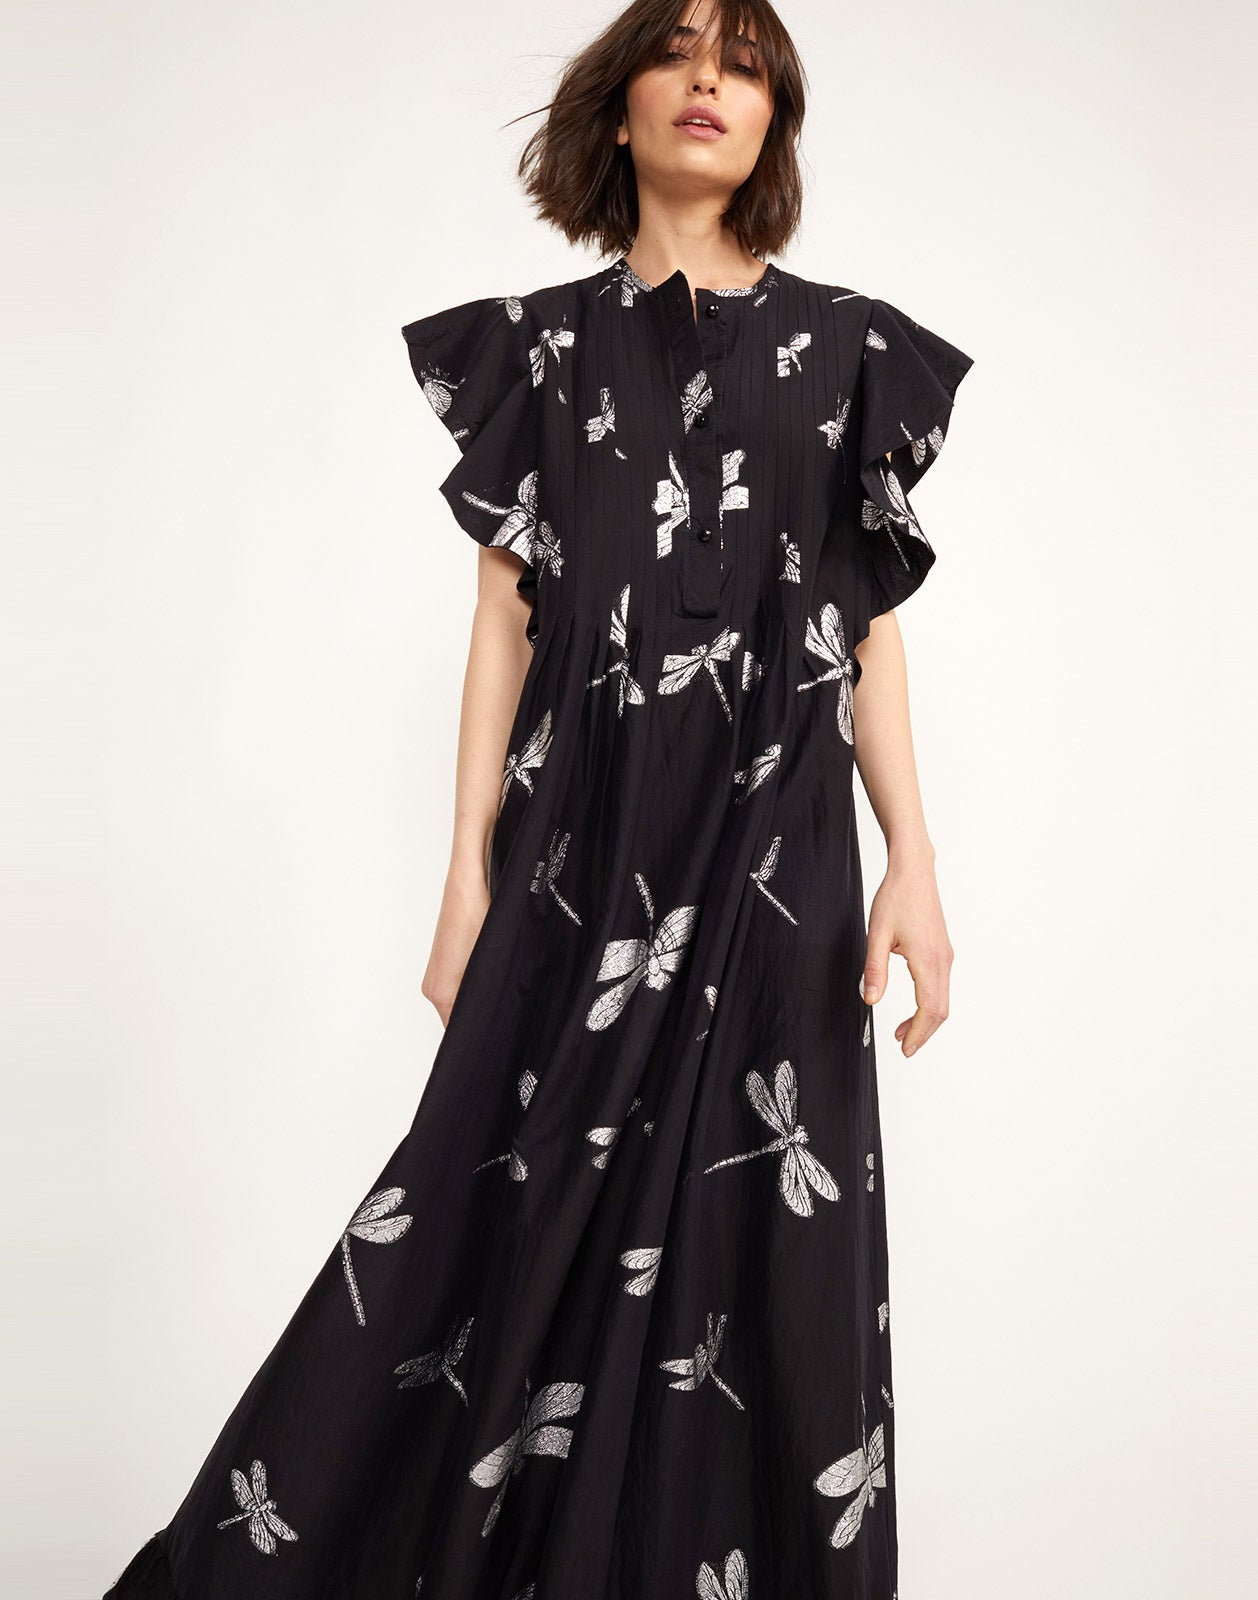 Additional front view of the Nairobi Dragonfly Kaftan Dress